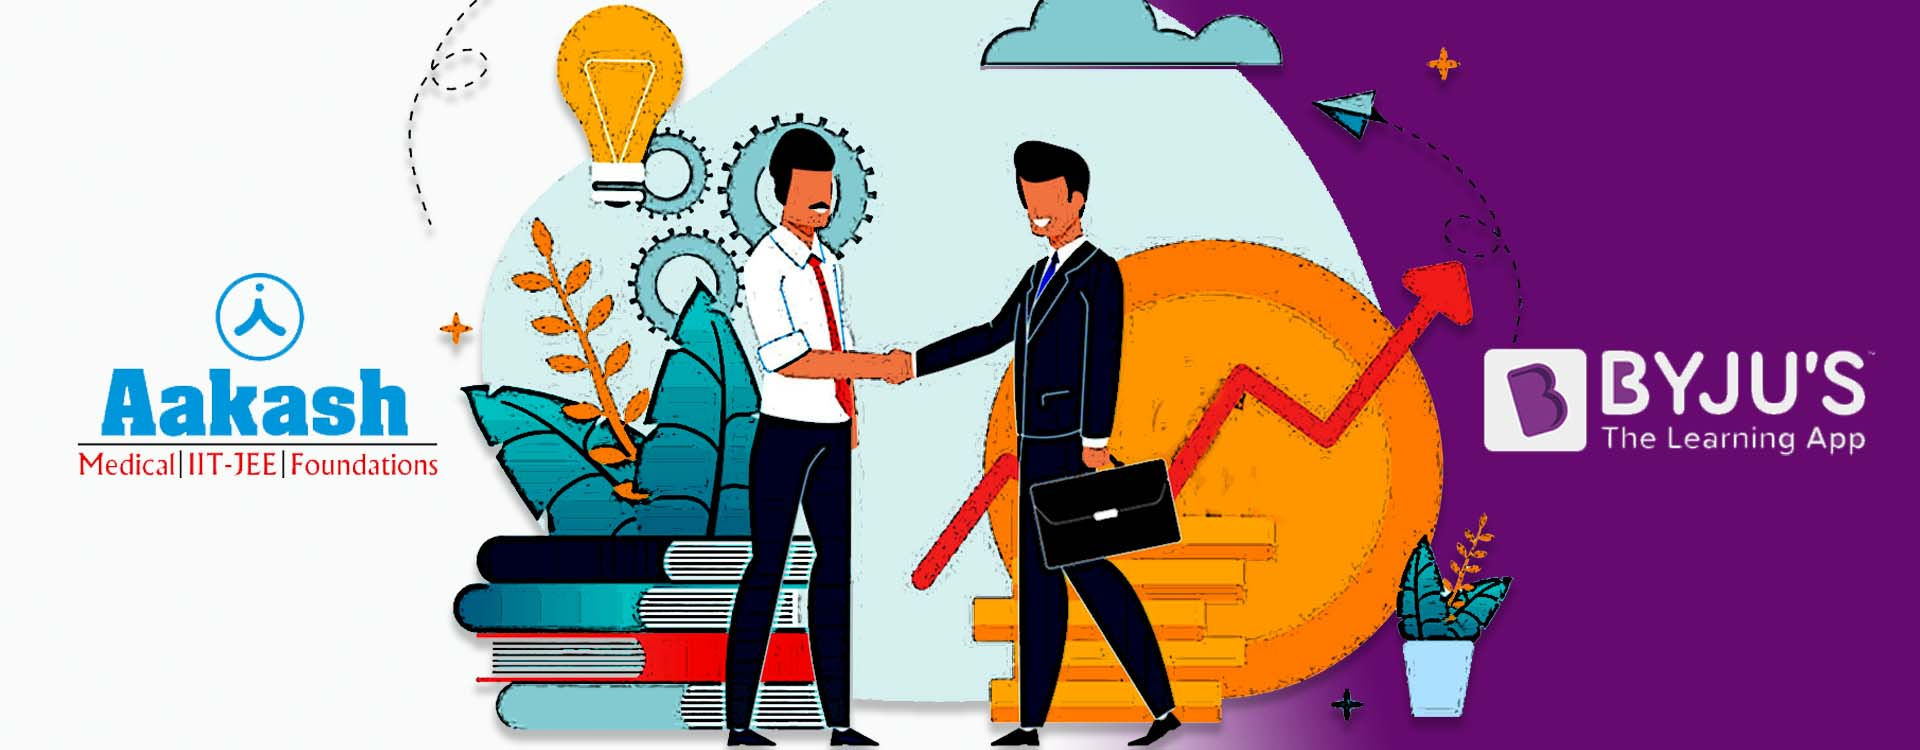 Acquisition by Byjus: Decoding the $1 Billion Byju's-Aakash Deal